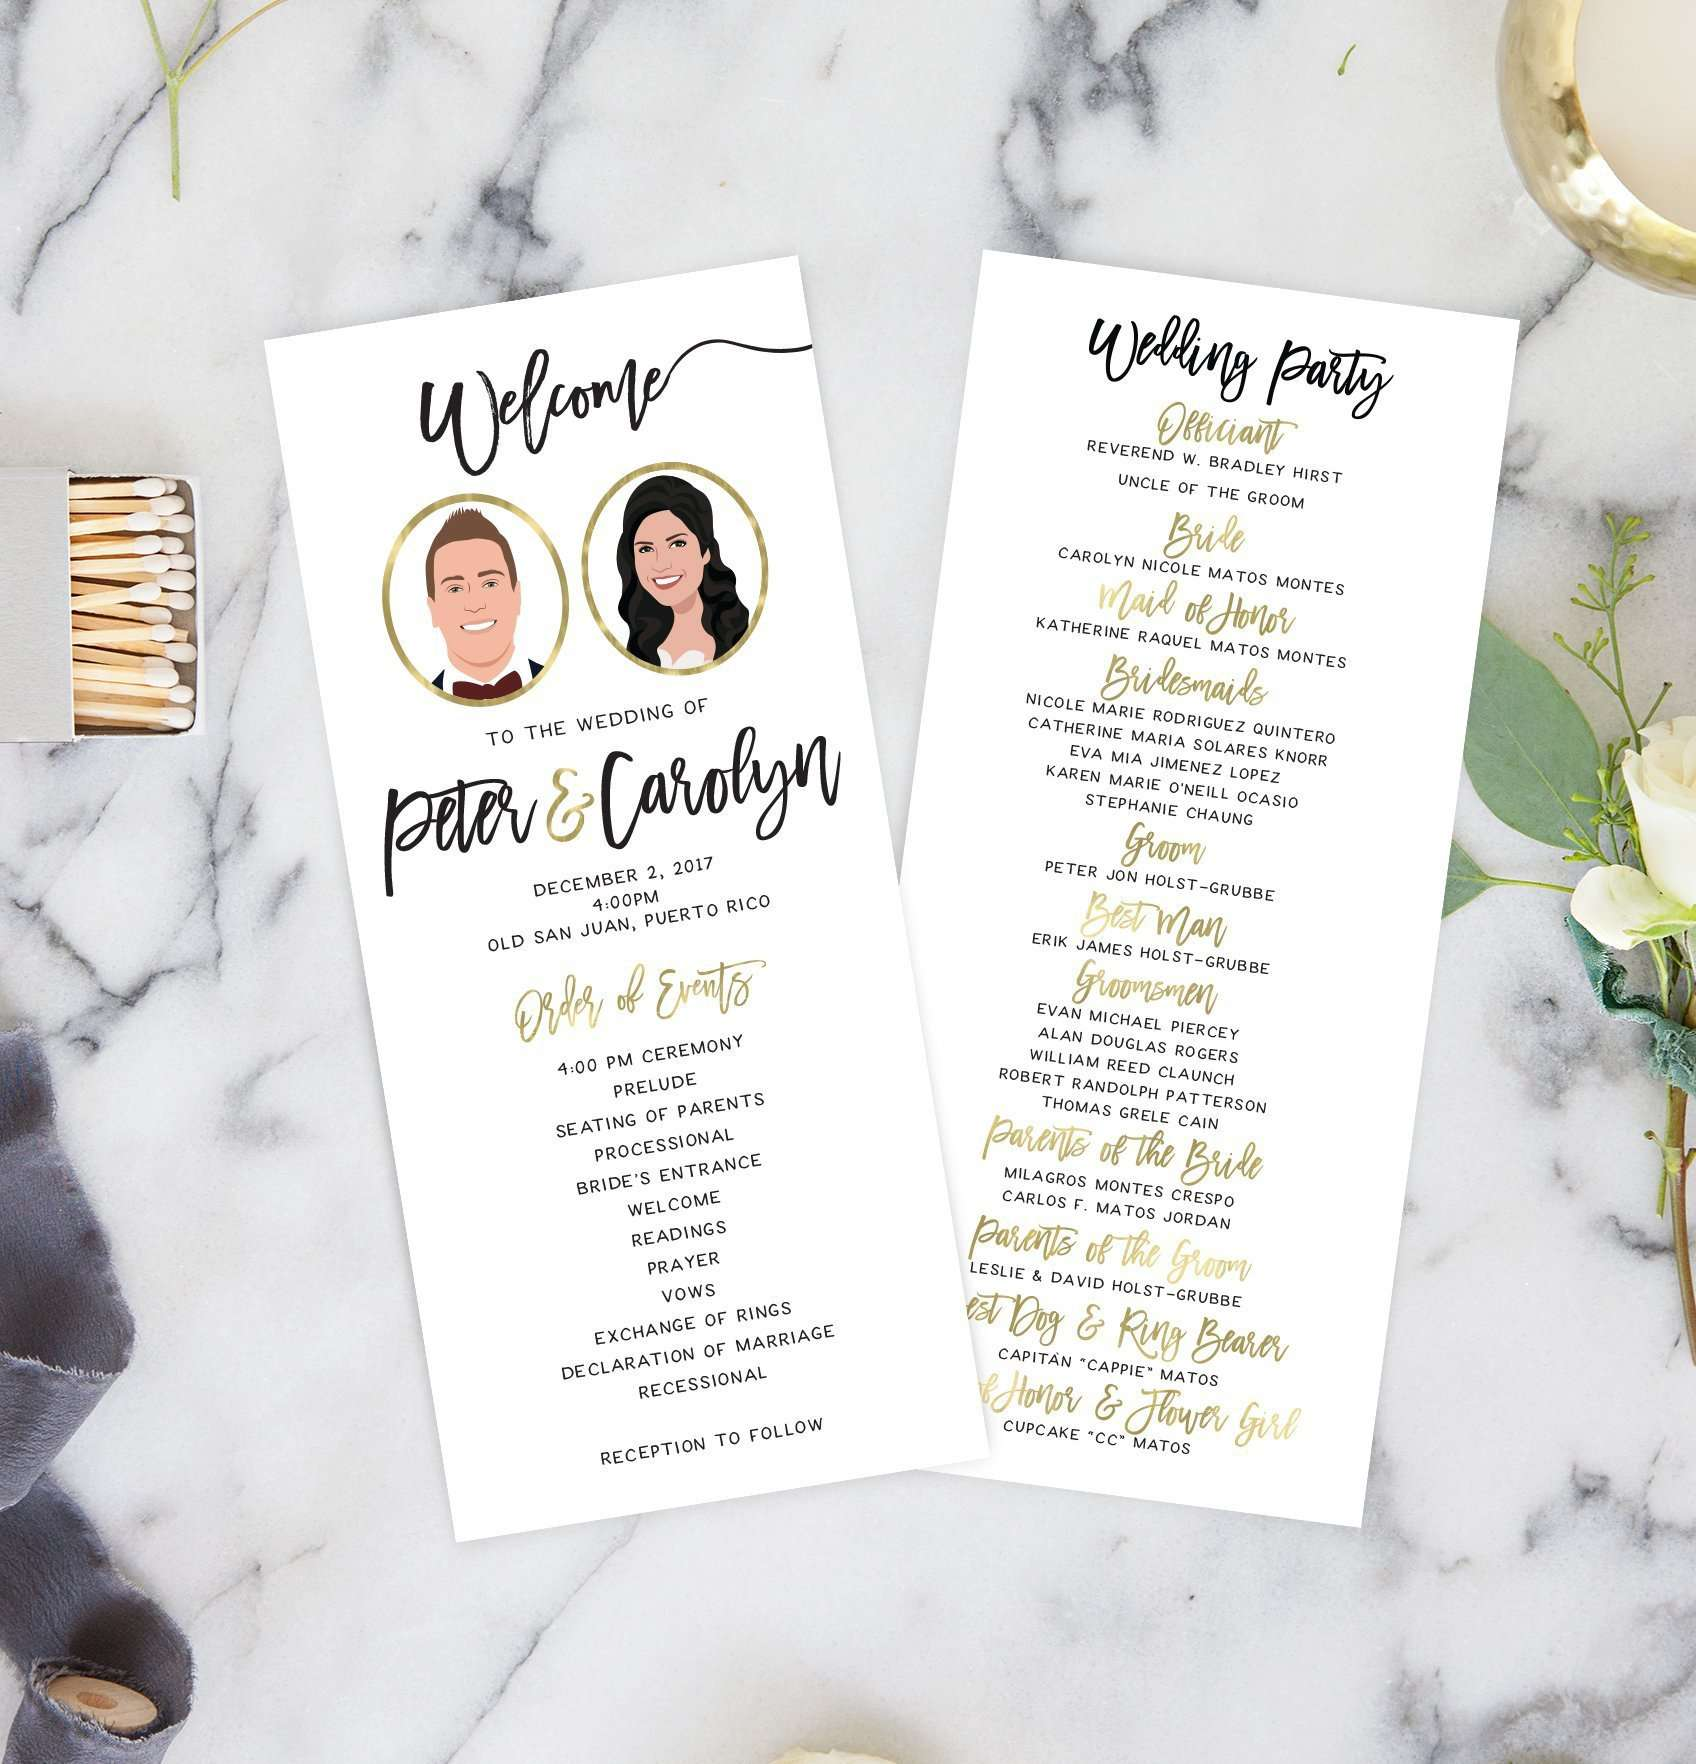 Wedding Ceremony Program.Wedding Ceremony Programs With Portraits